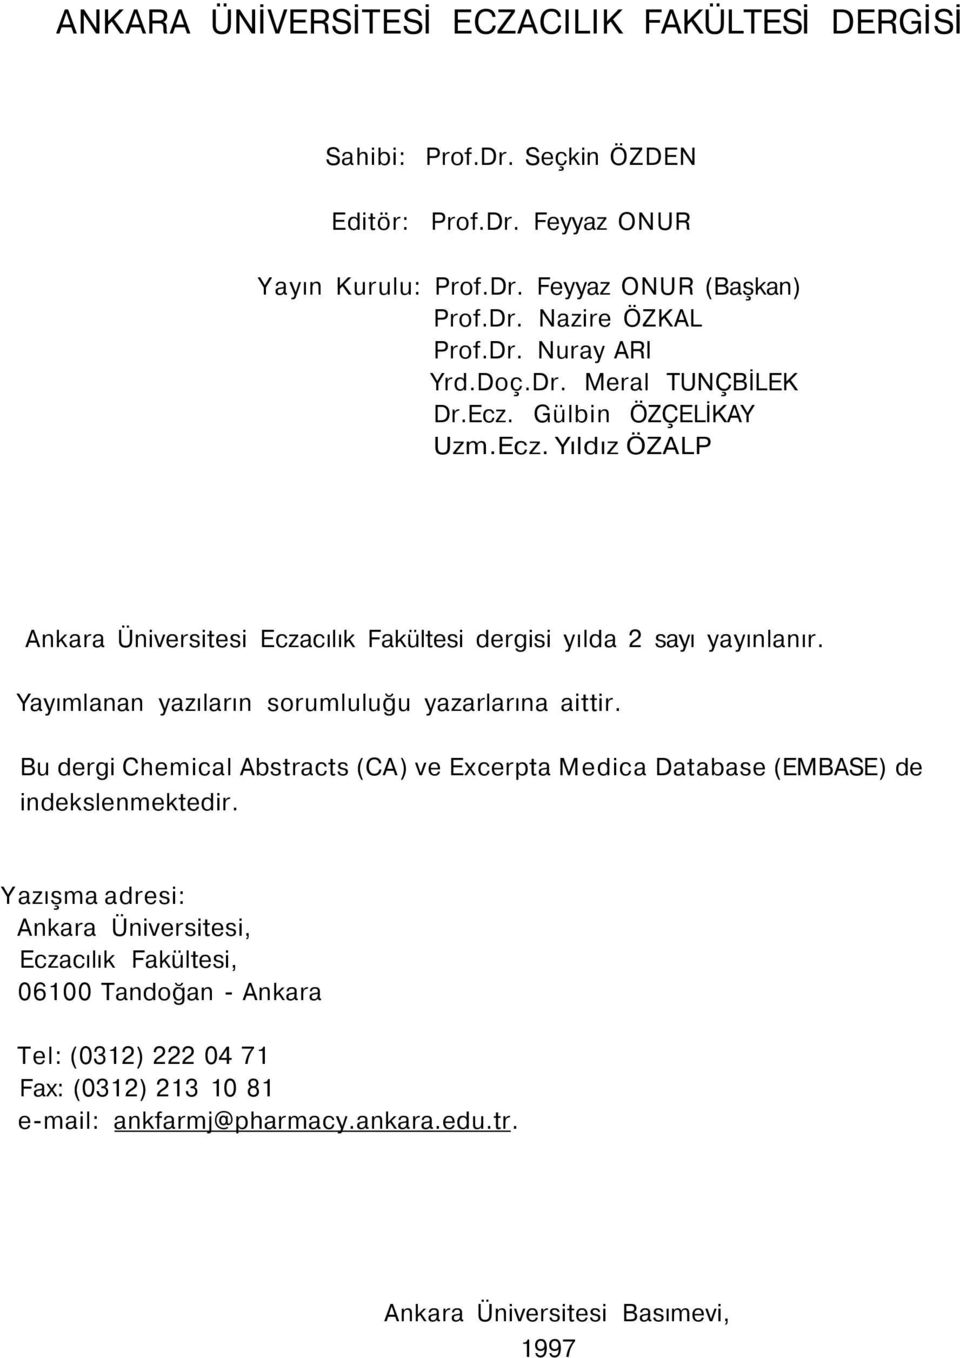 Yayımlanan yazıların sorumluluğu yazarlarına aittir. Bu dergi Chemical Abstracts (CA) ve Excerpta Medica Database (EMBASE) de indekslenmektedir.